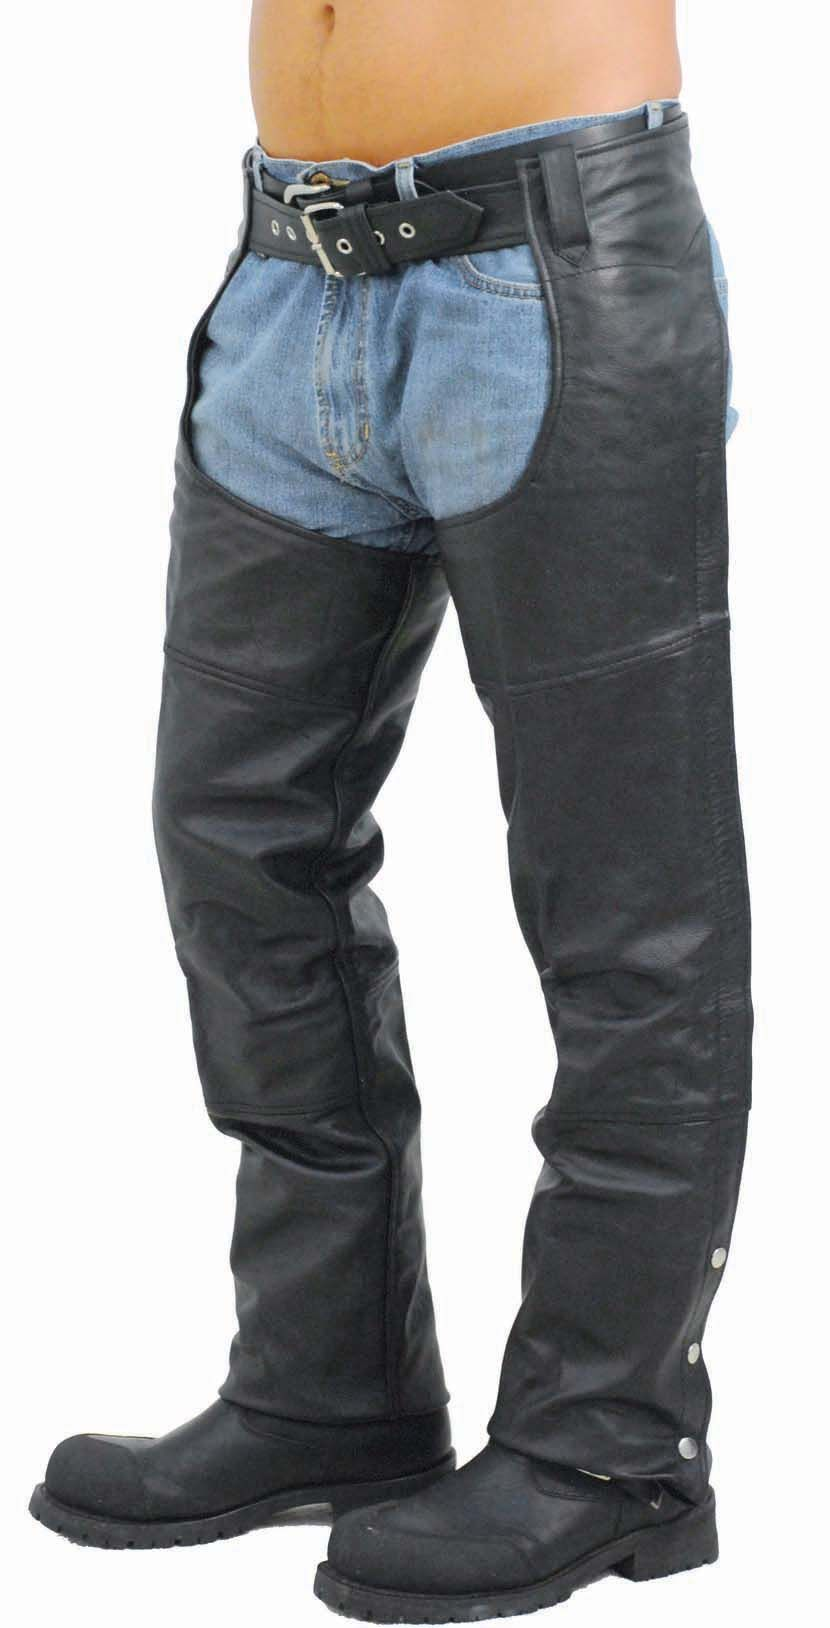 Extra Heavy Classic Biker Leather Chaps Unisex Limited Offer C8116k Leather Chaps Biker T Shirts Biker Leather